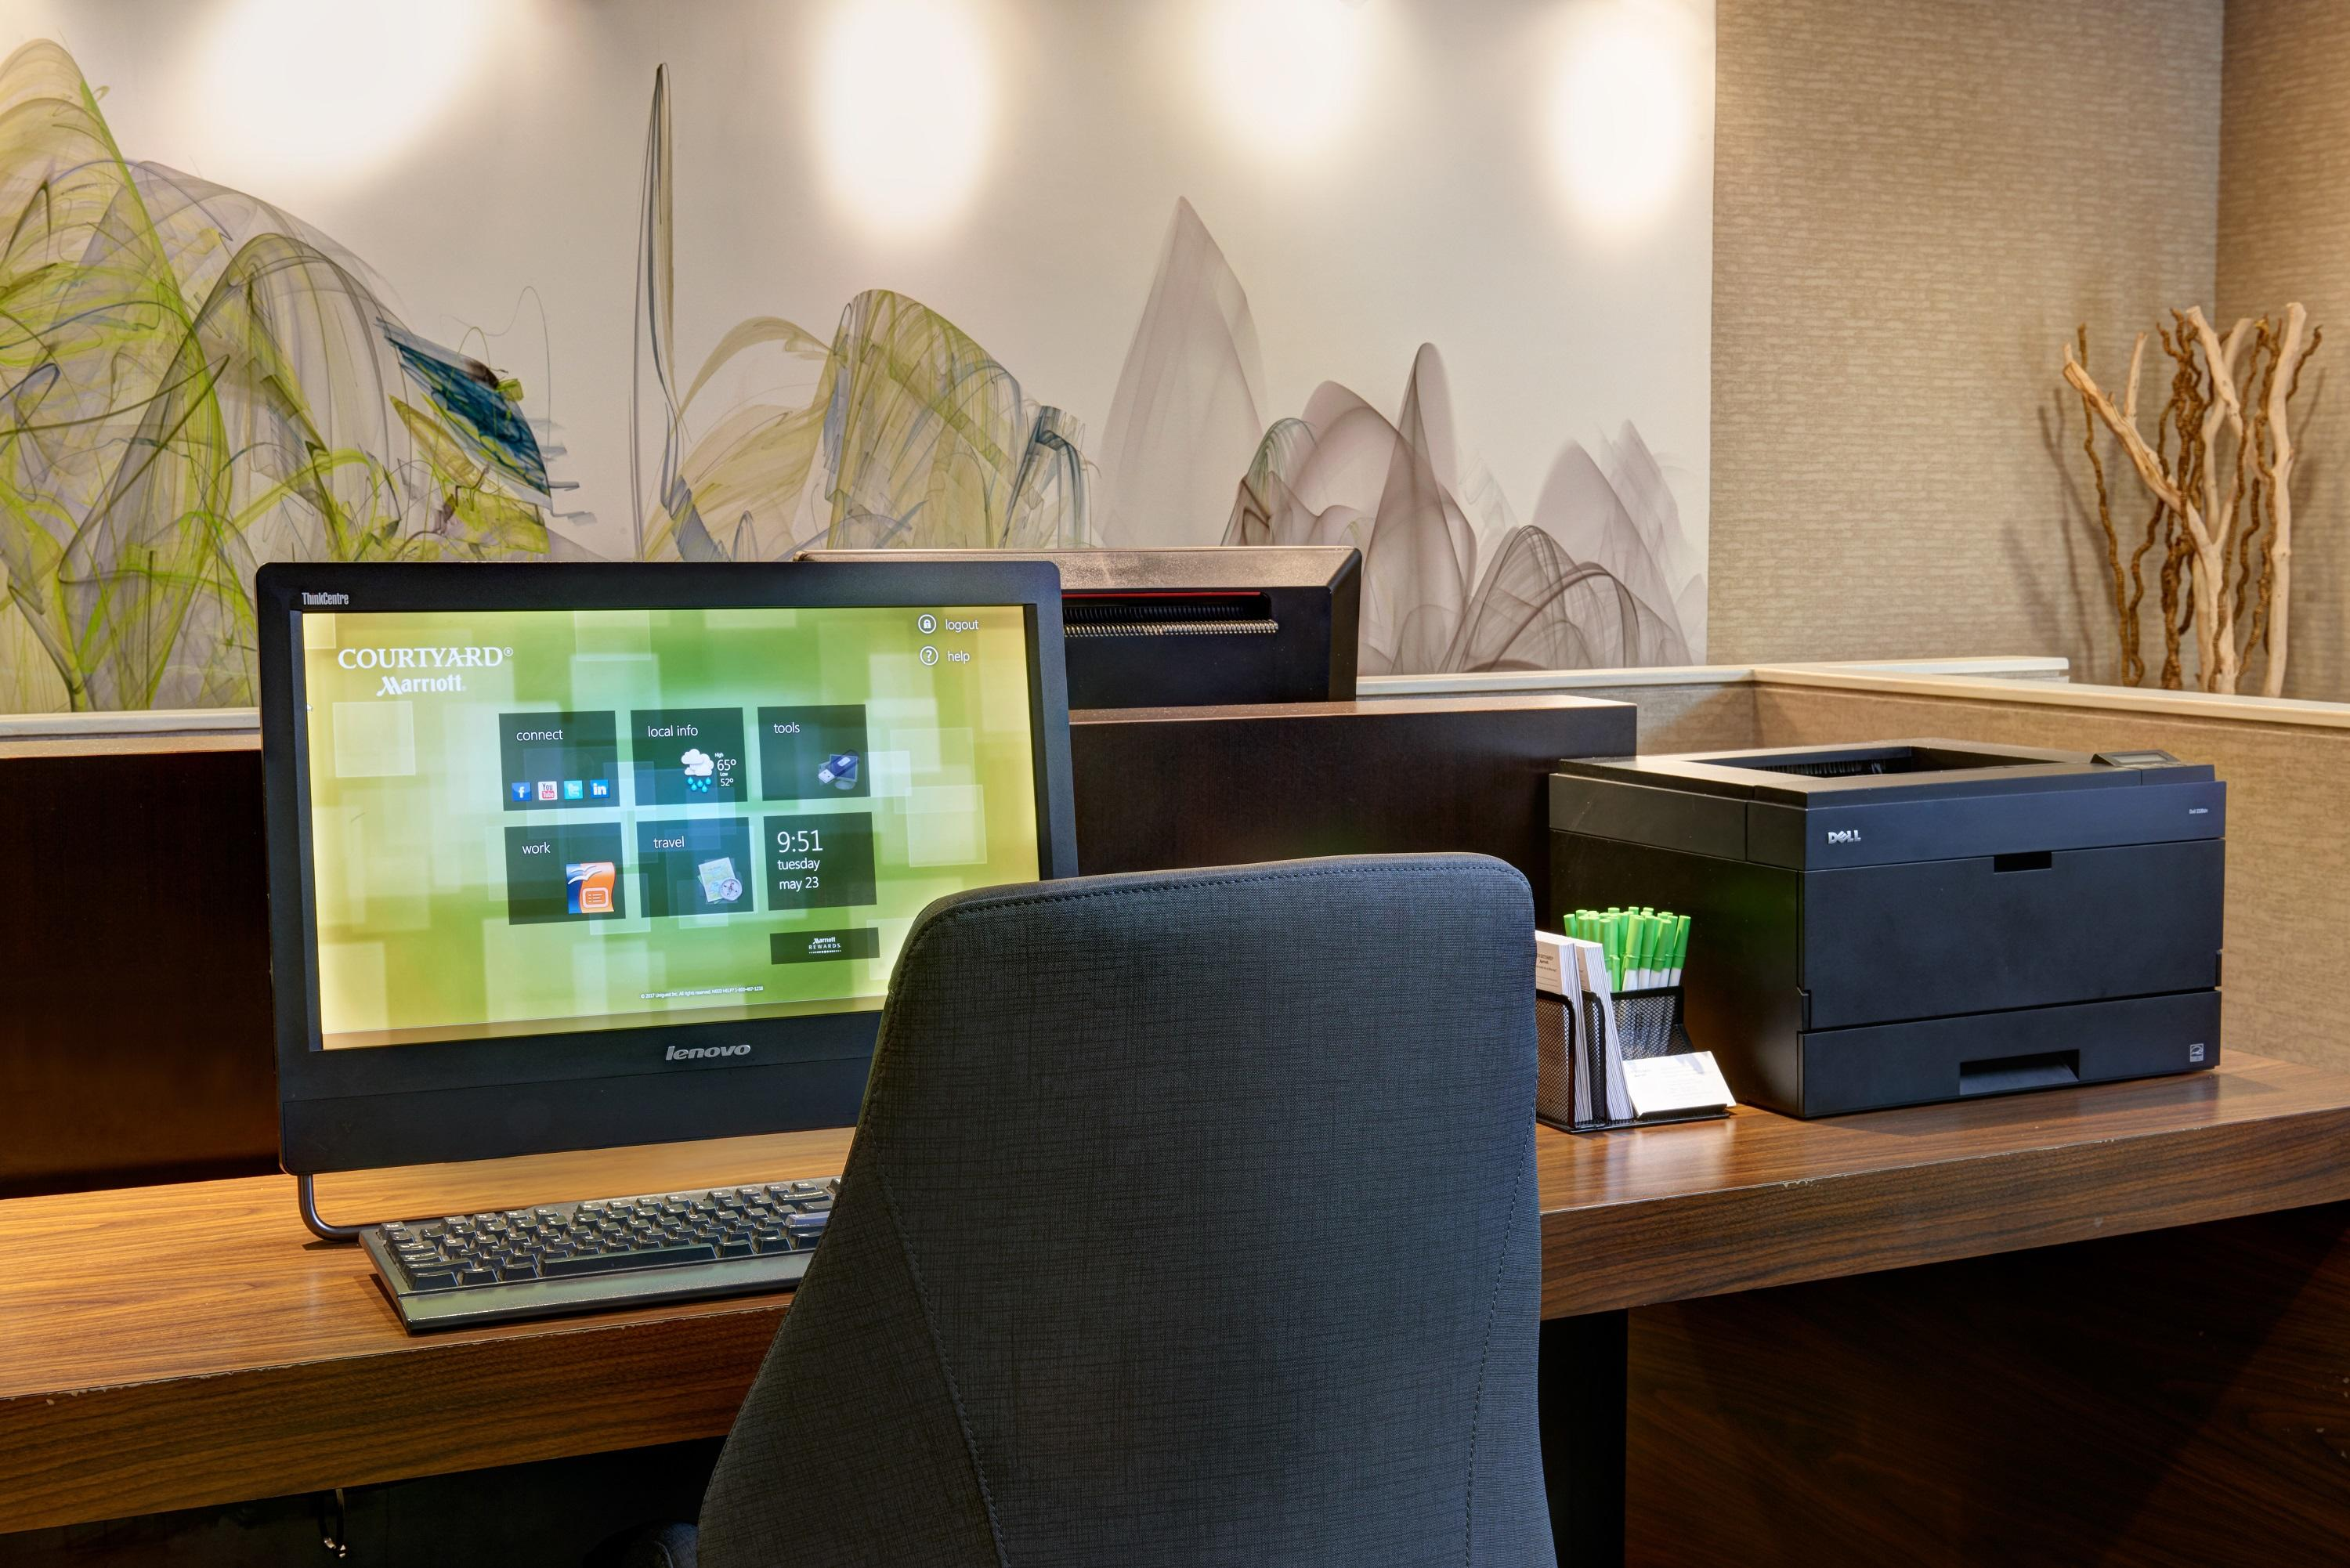 Courtyard by Marriott Chicago Oakbrook Terrace image 9